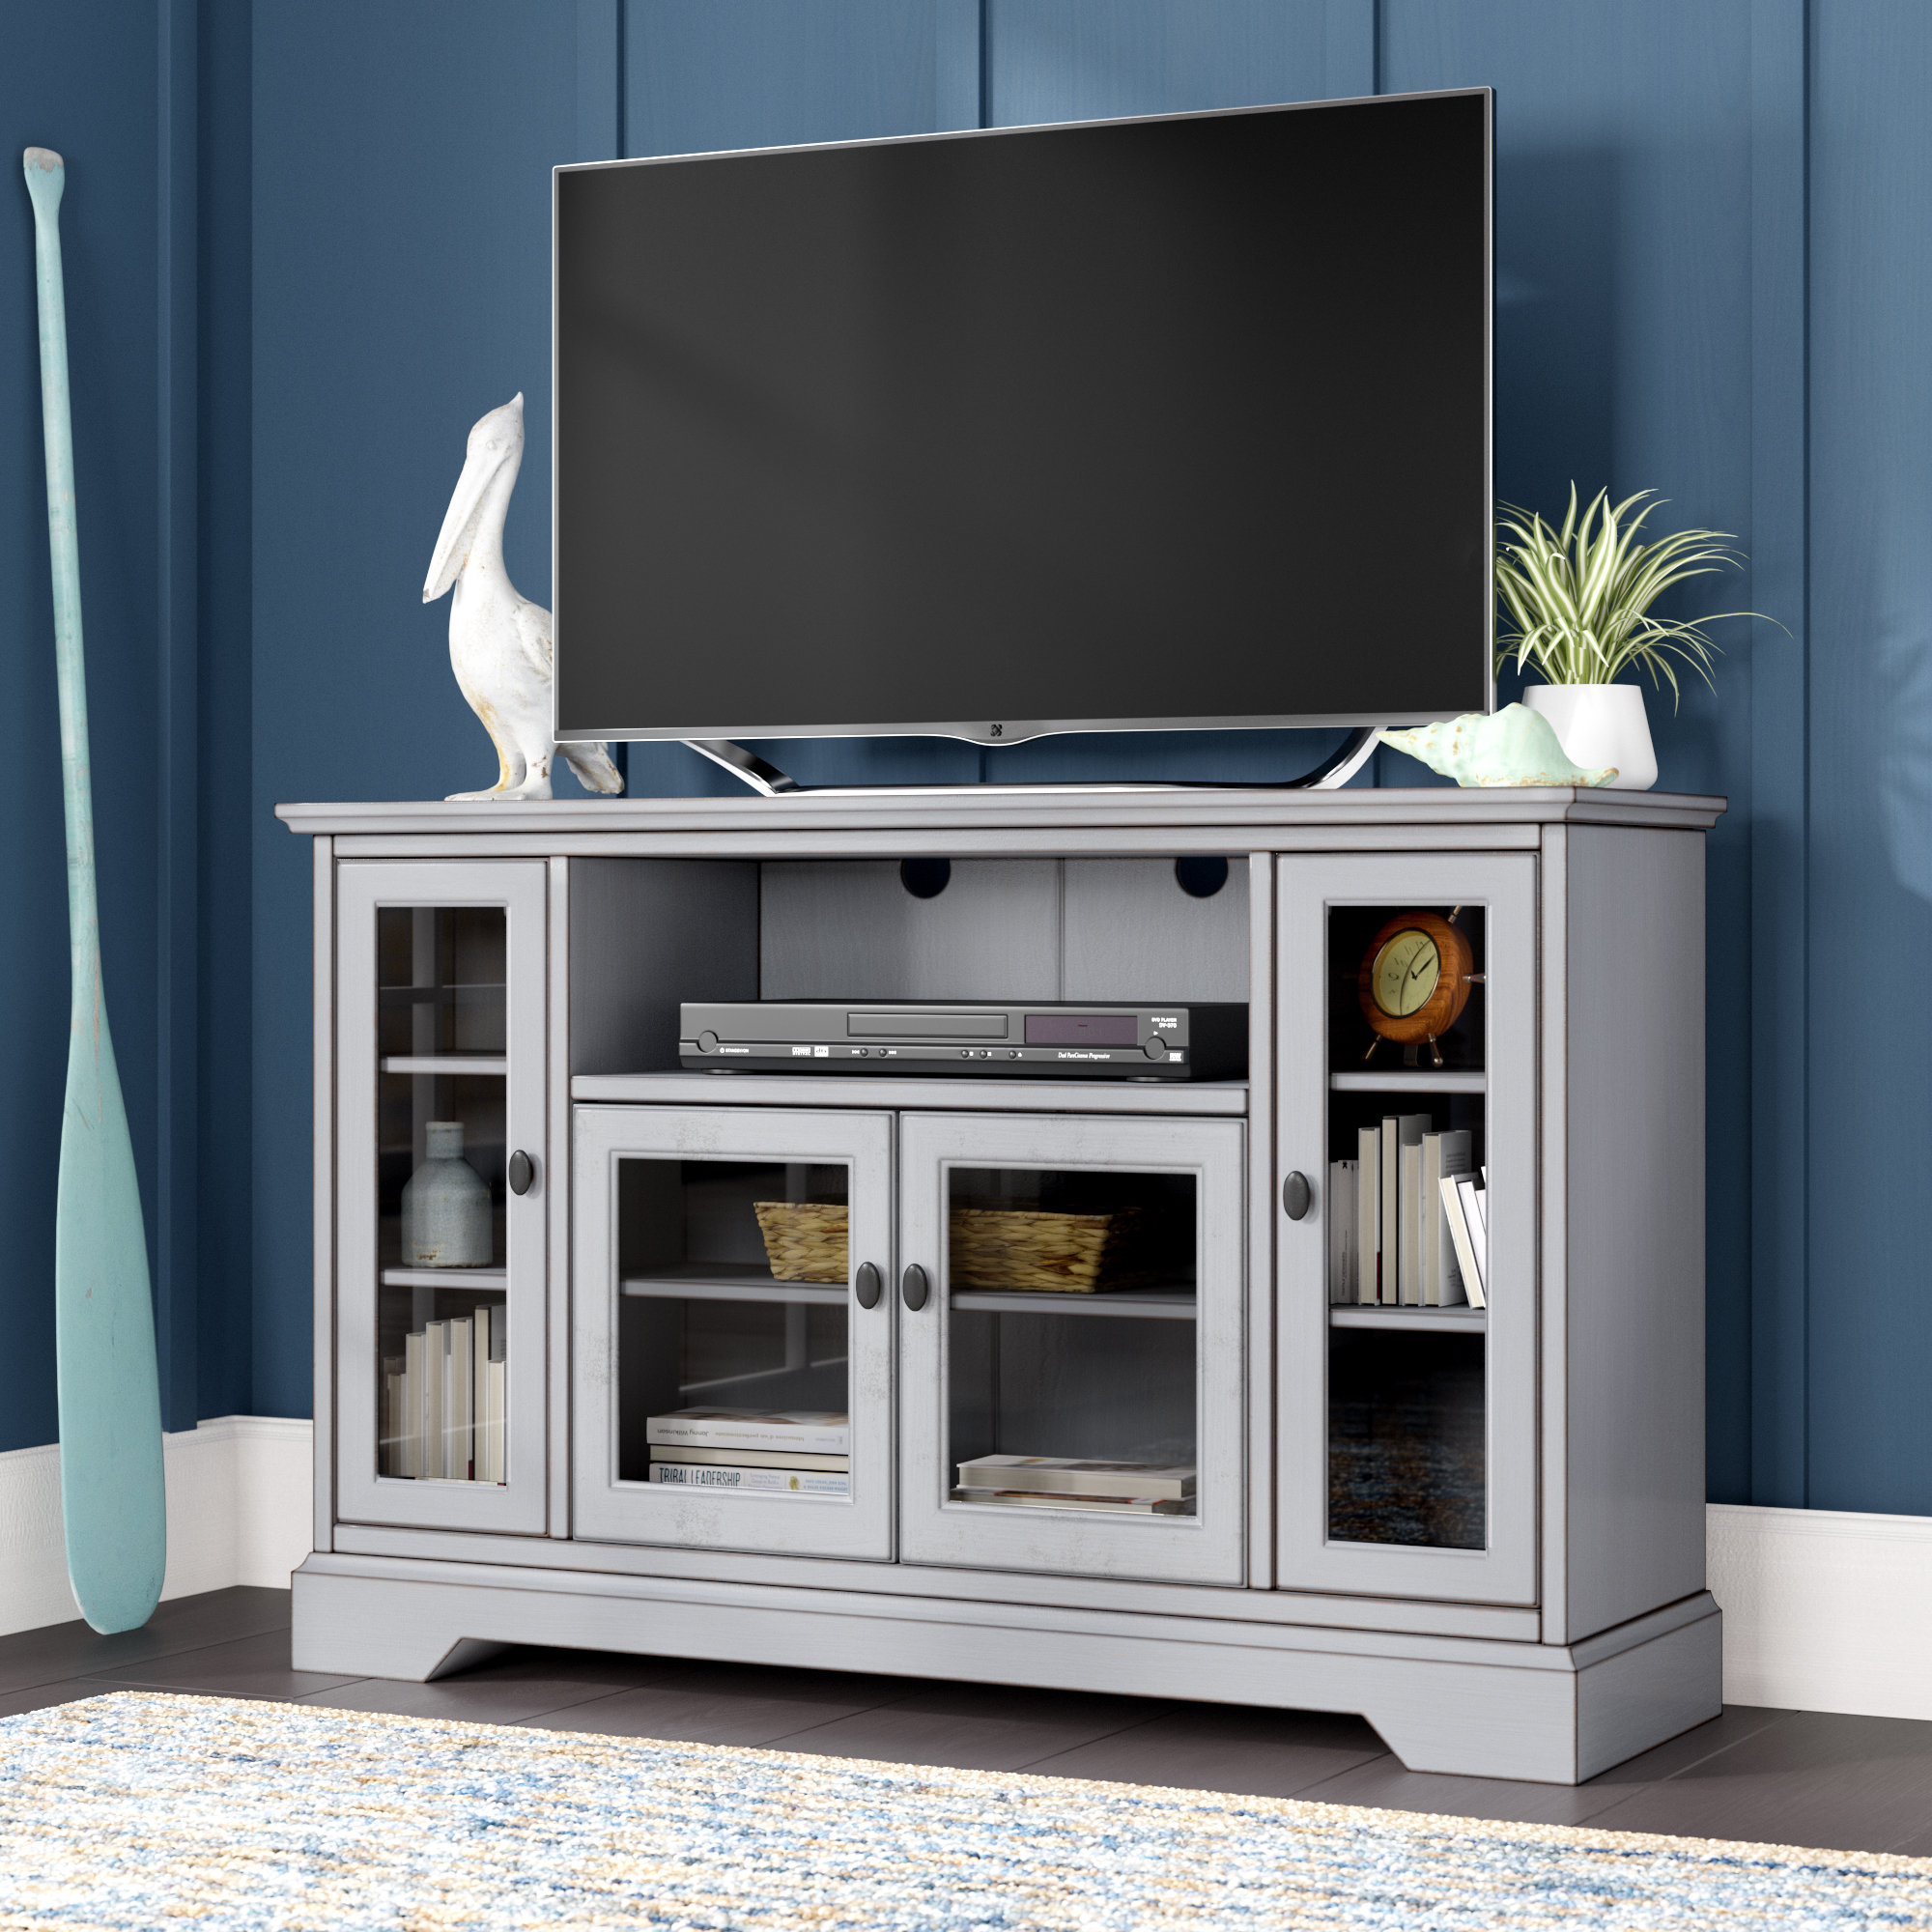 Tv Stands & Entertainment Centers You'll Love | Wayfair for Sinclair Blue 74 Inch Tv Stands (Image 25 of 30)